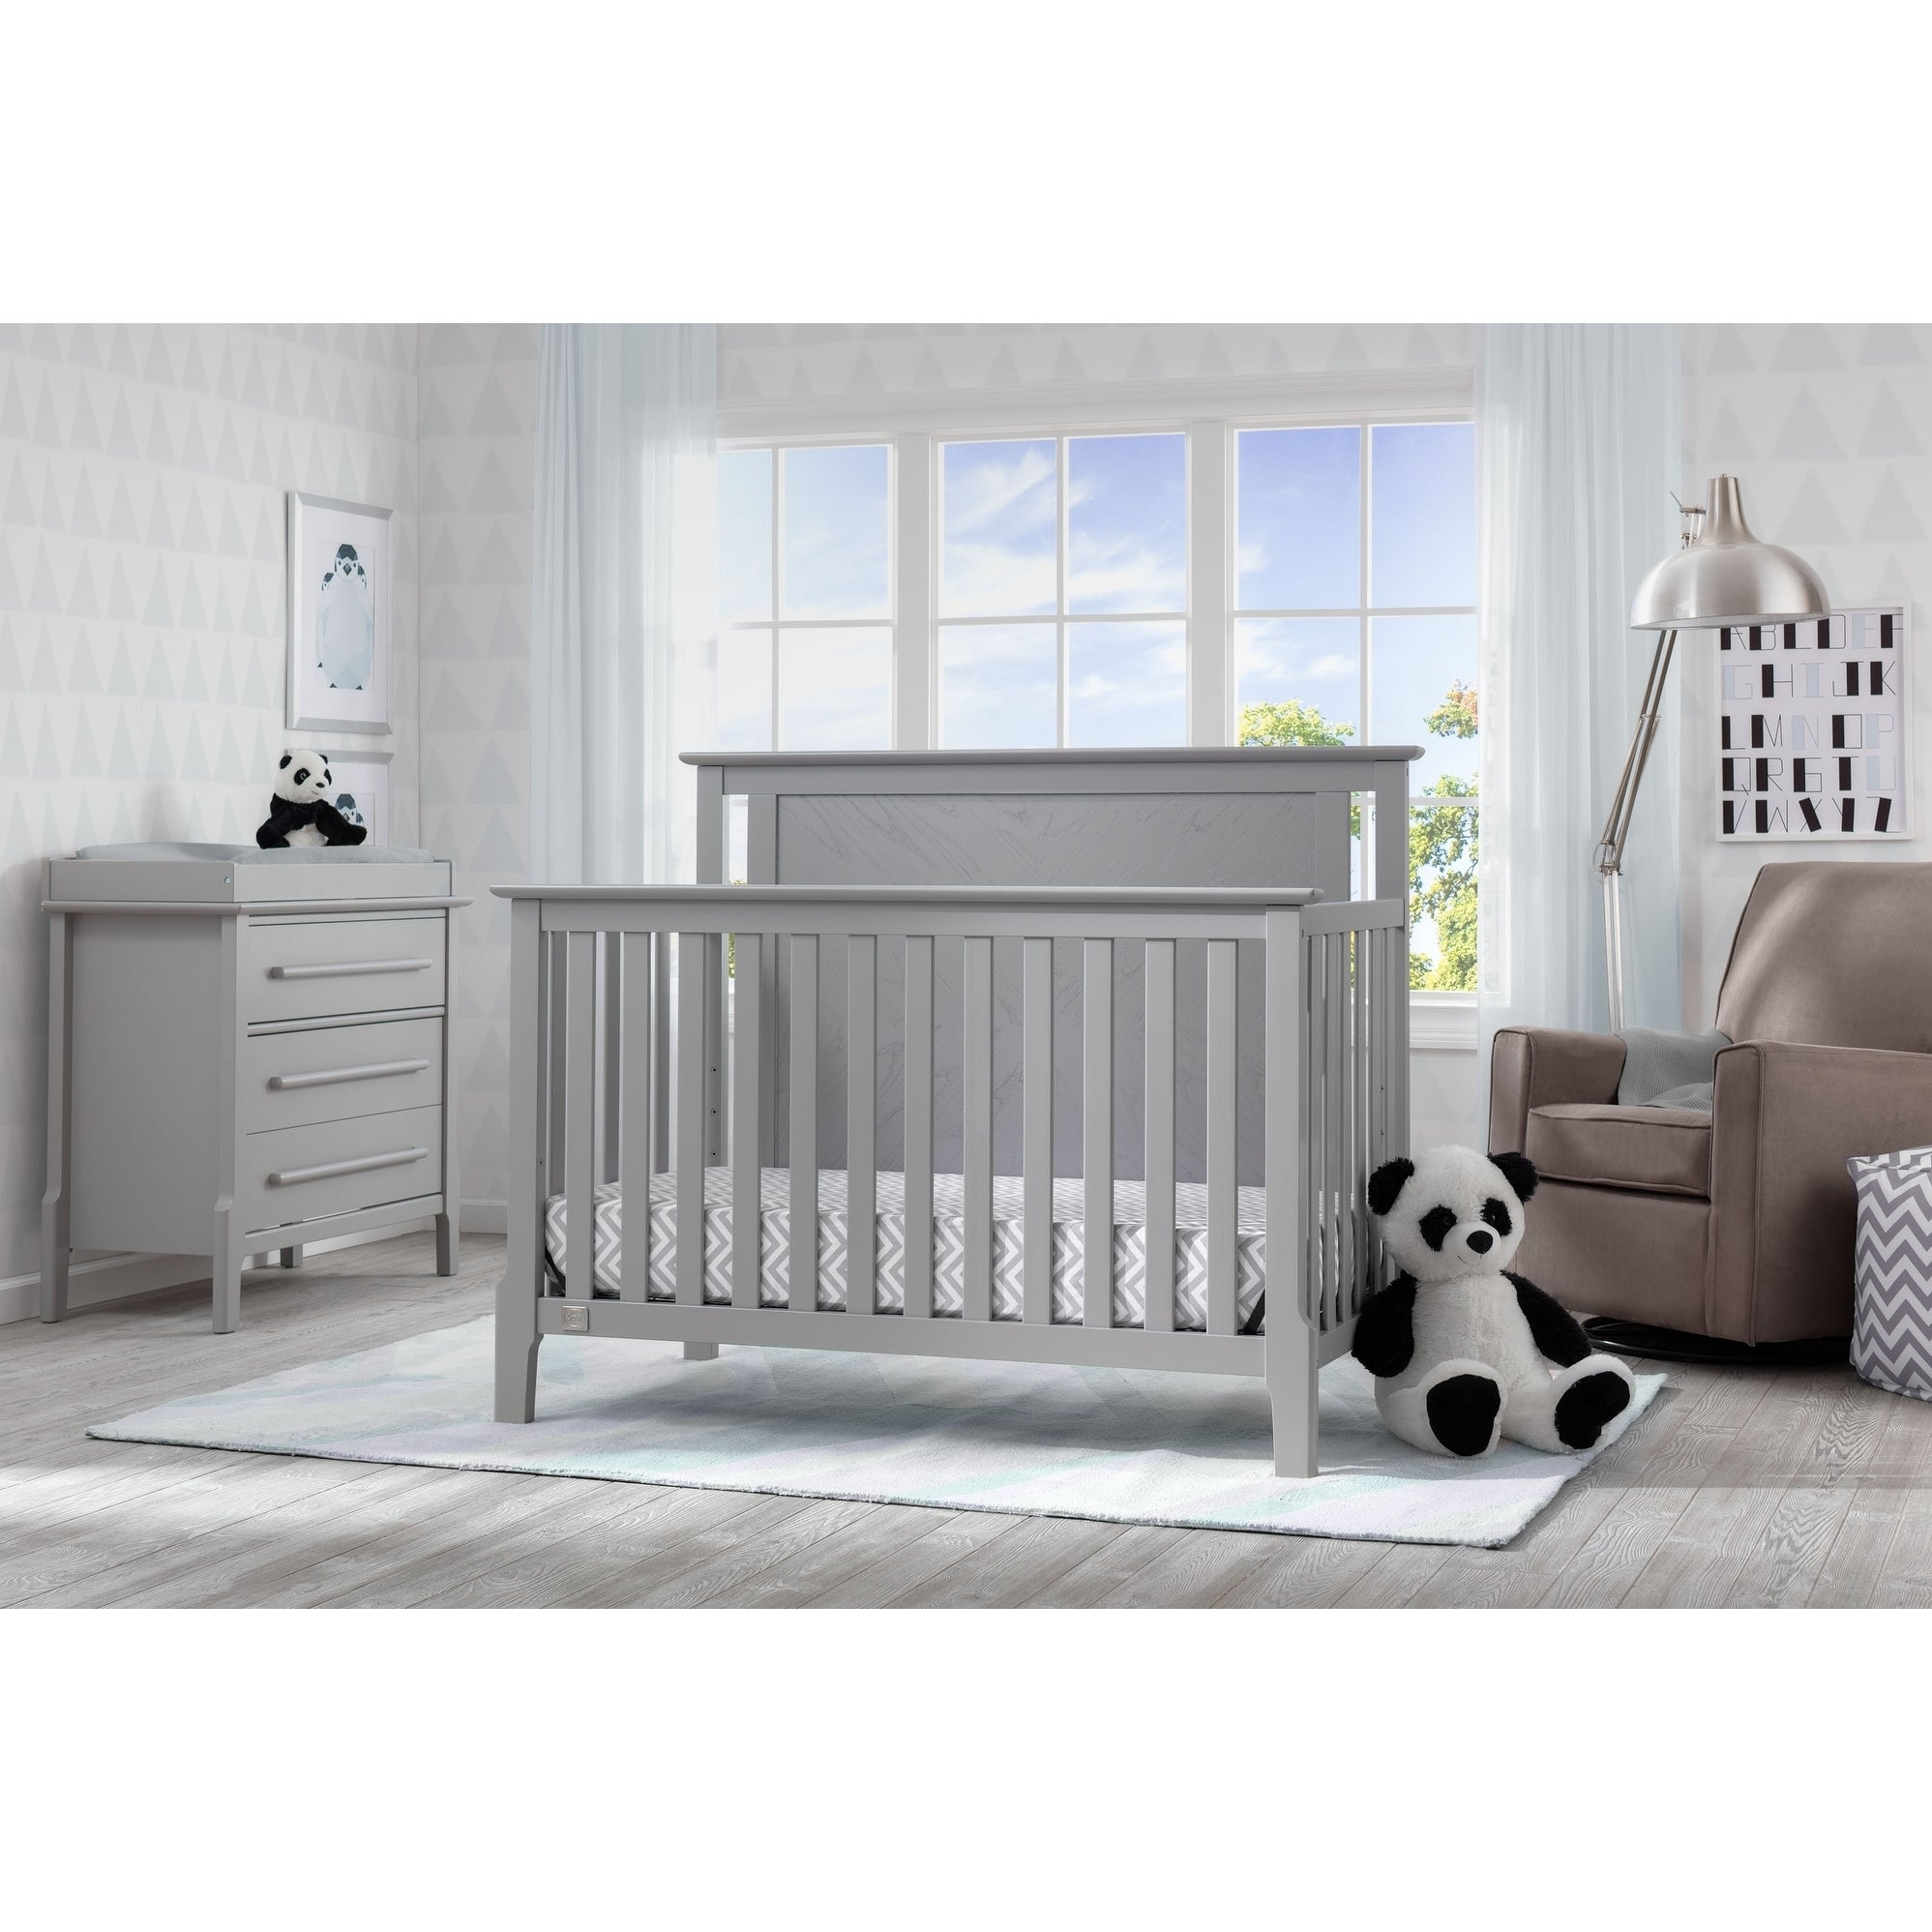 why century oeuf mid face rhea walnut launches cribs modern scoop crib